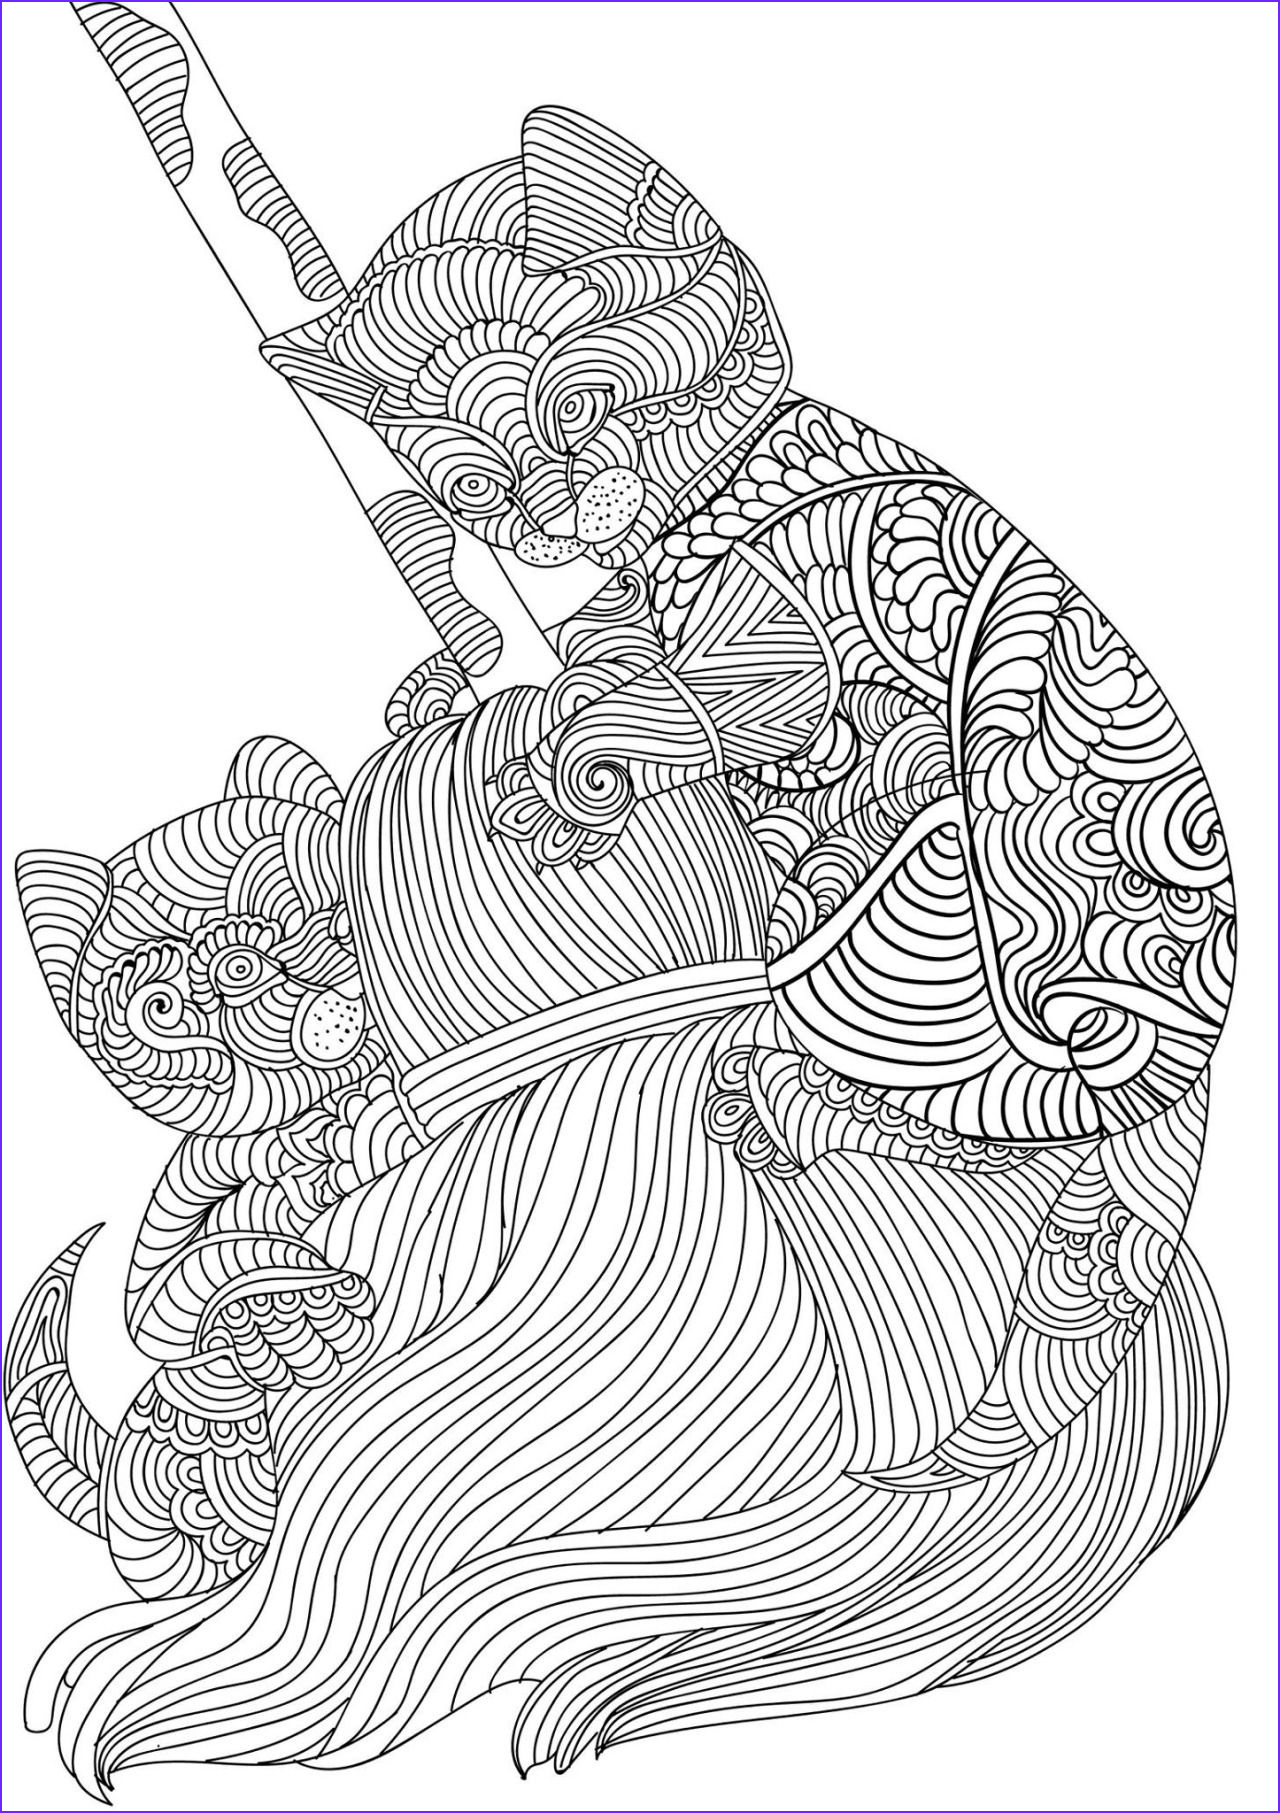 Adult Cat Coloring Pages New Stock Bestadultcoloringbooks